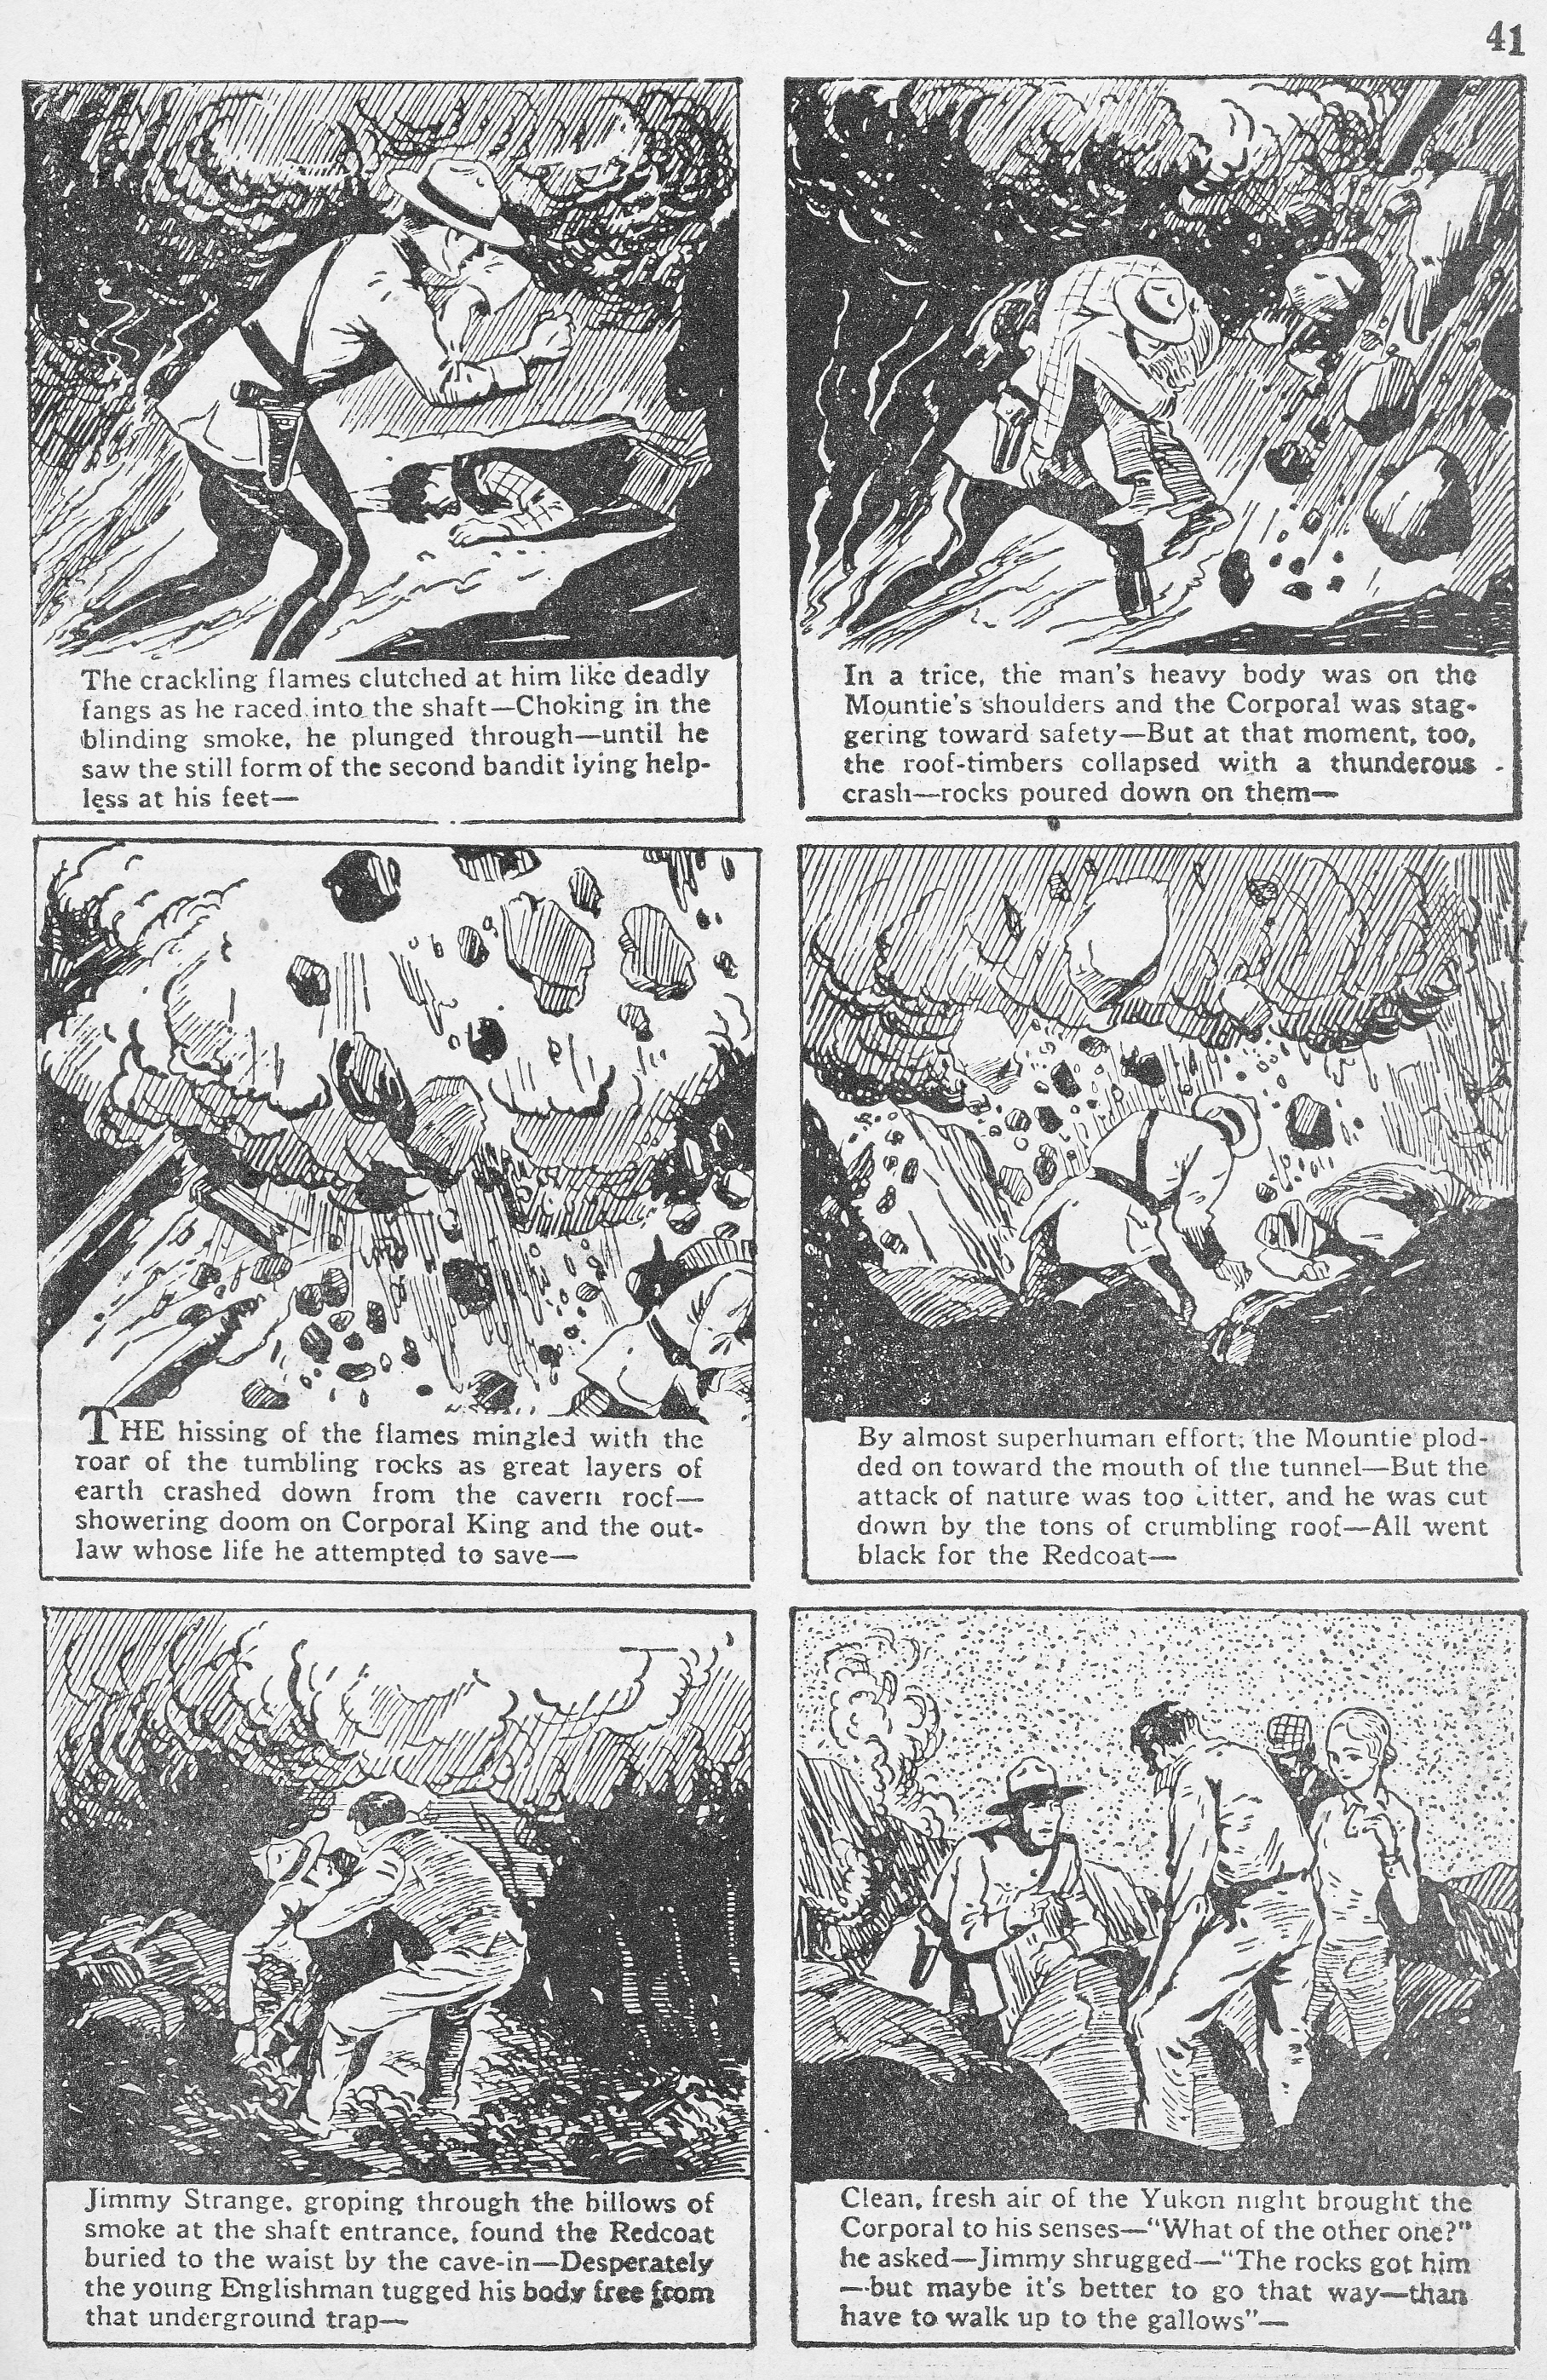 C:\Users\Robert\Documents\CARTOONING ILLUSTRATION ANIMATION\IMAGE CARTOON\IMAGE CARTOON M\MEN OF THE MOUNTED, Robin Hood, 2-2, May-June, 1943, 41.jpg